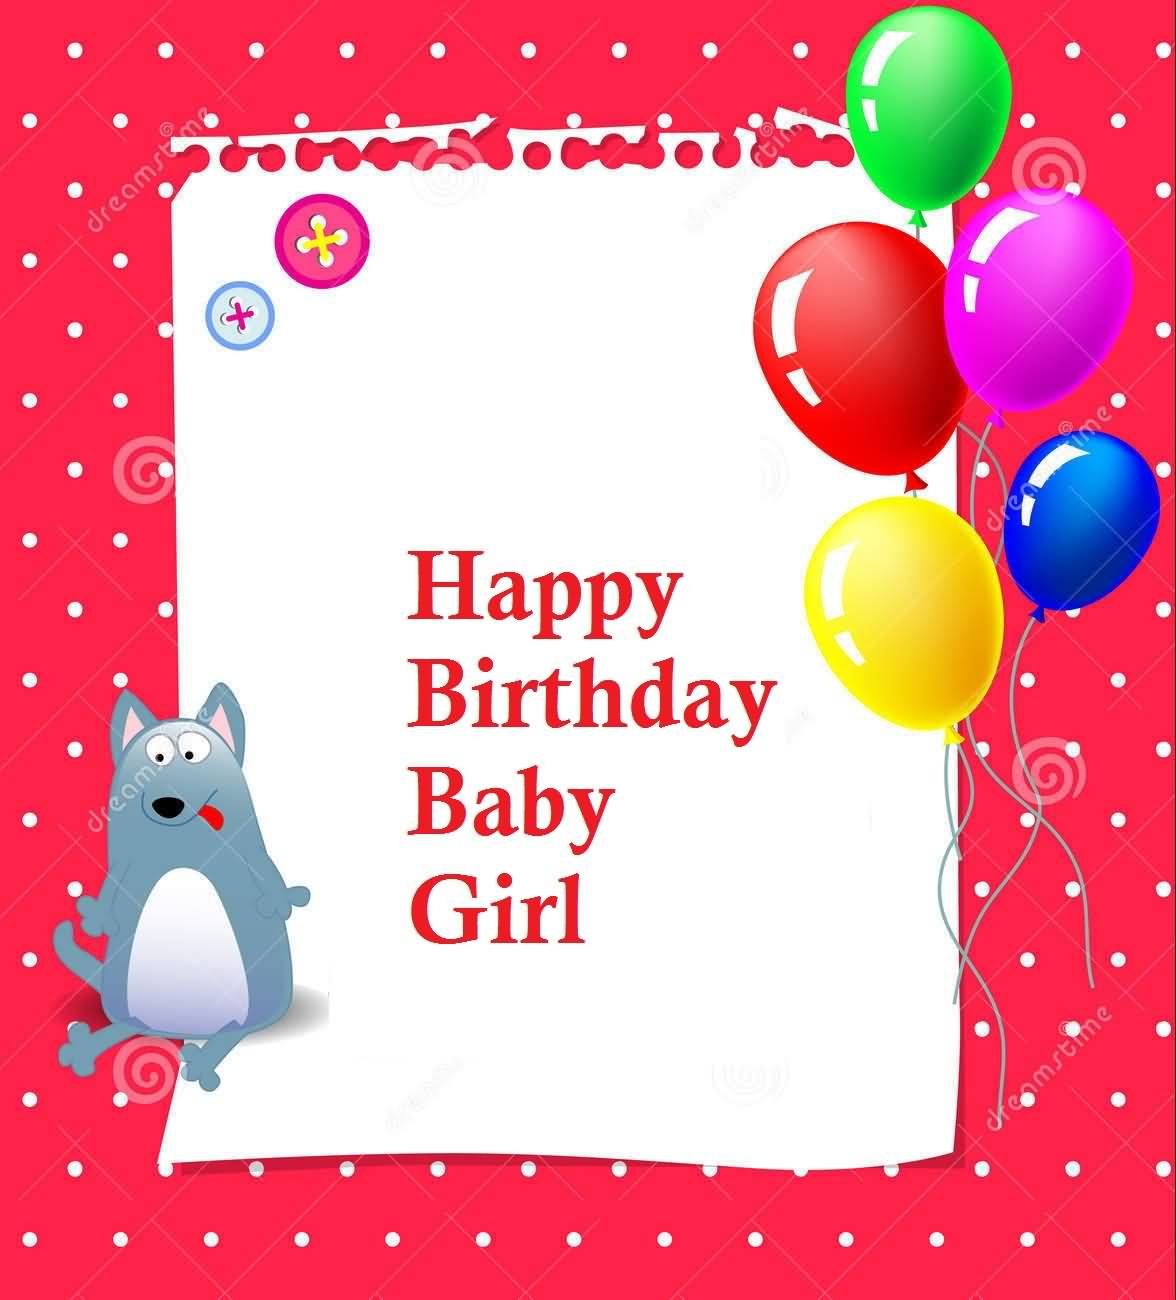 37 Sweet Baby Girl Birthday Greetings Cards Wishes Happy Birthday Wishes For Toddler